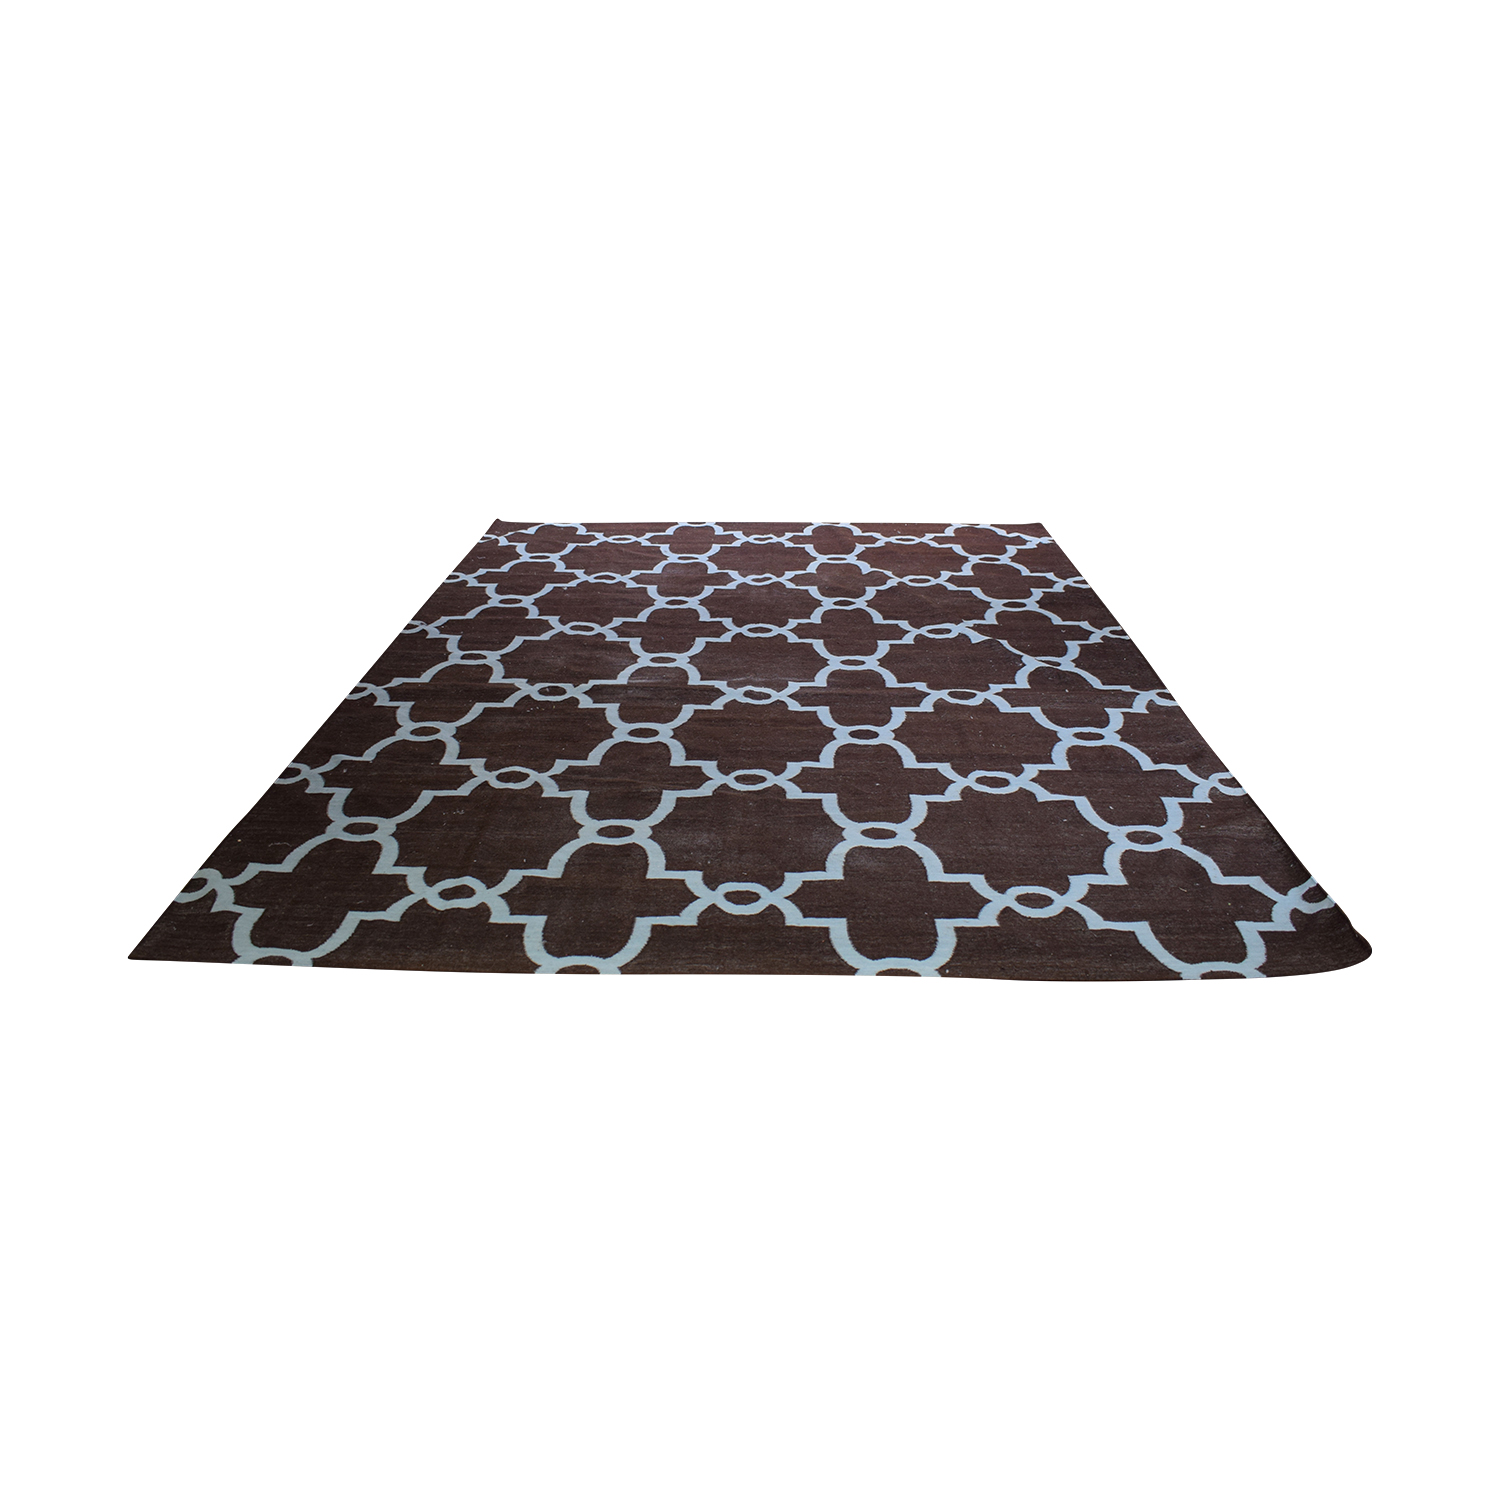 Obeetee Obeetee Brown Dhurrie Hand Knotted Wool Rug Rugs